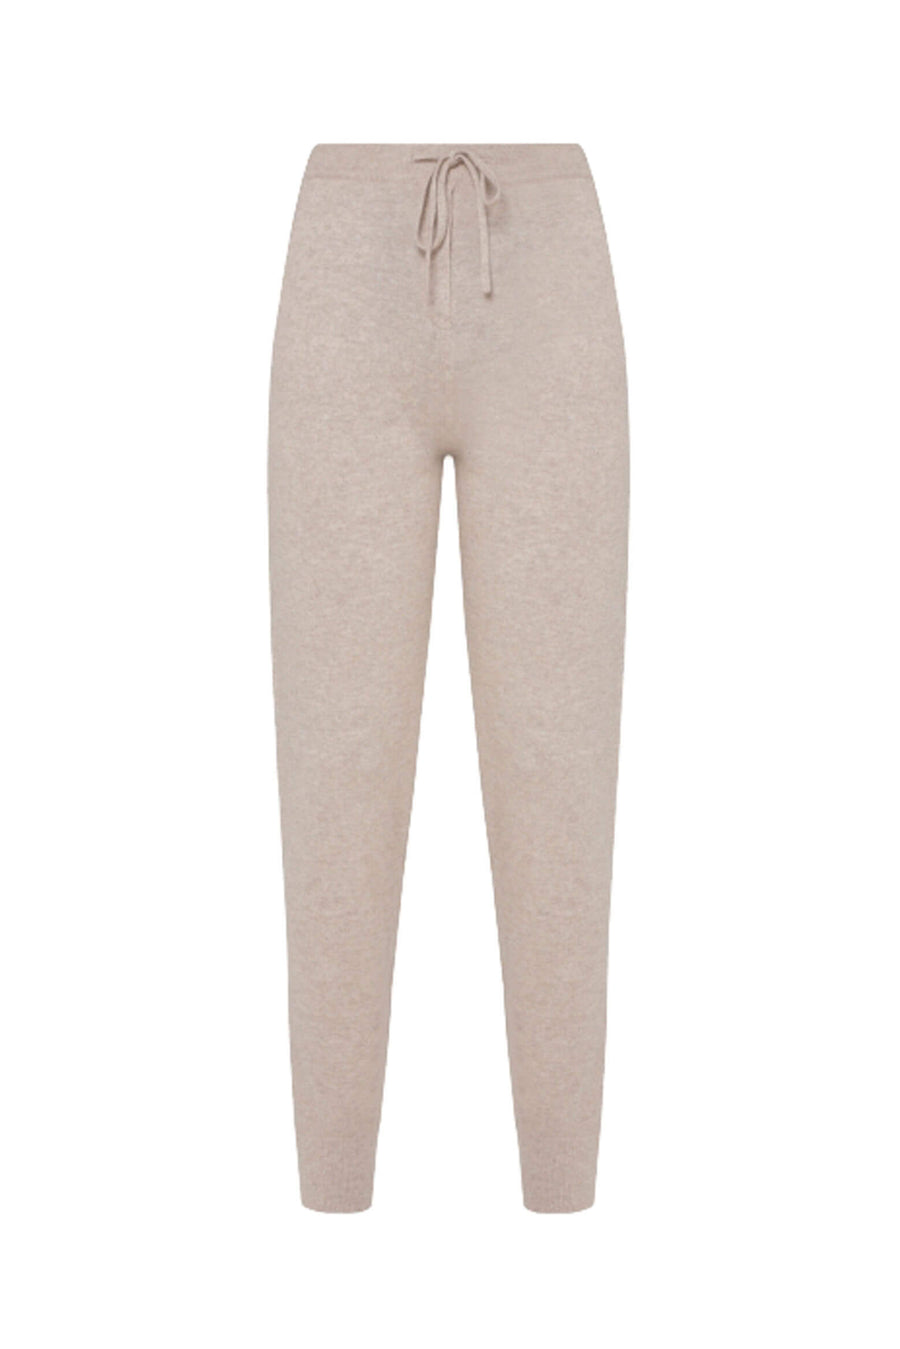 Chinti & Parker Cashmere Trackpant in Oatmeal from The New Trend